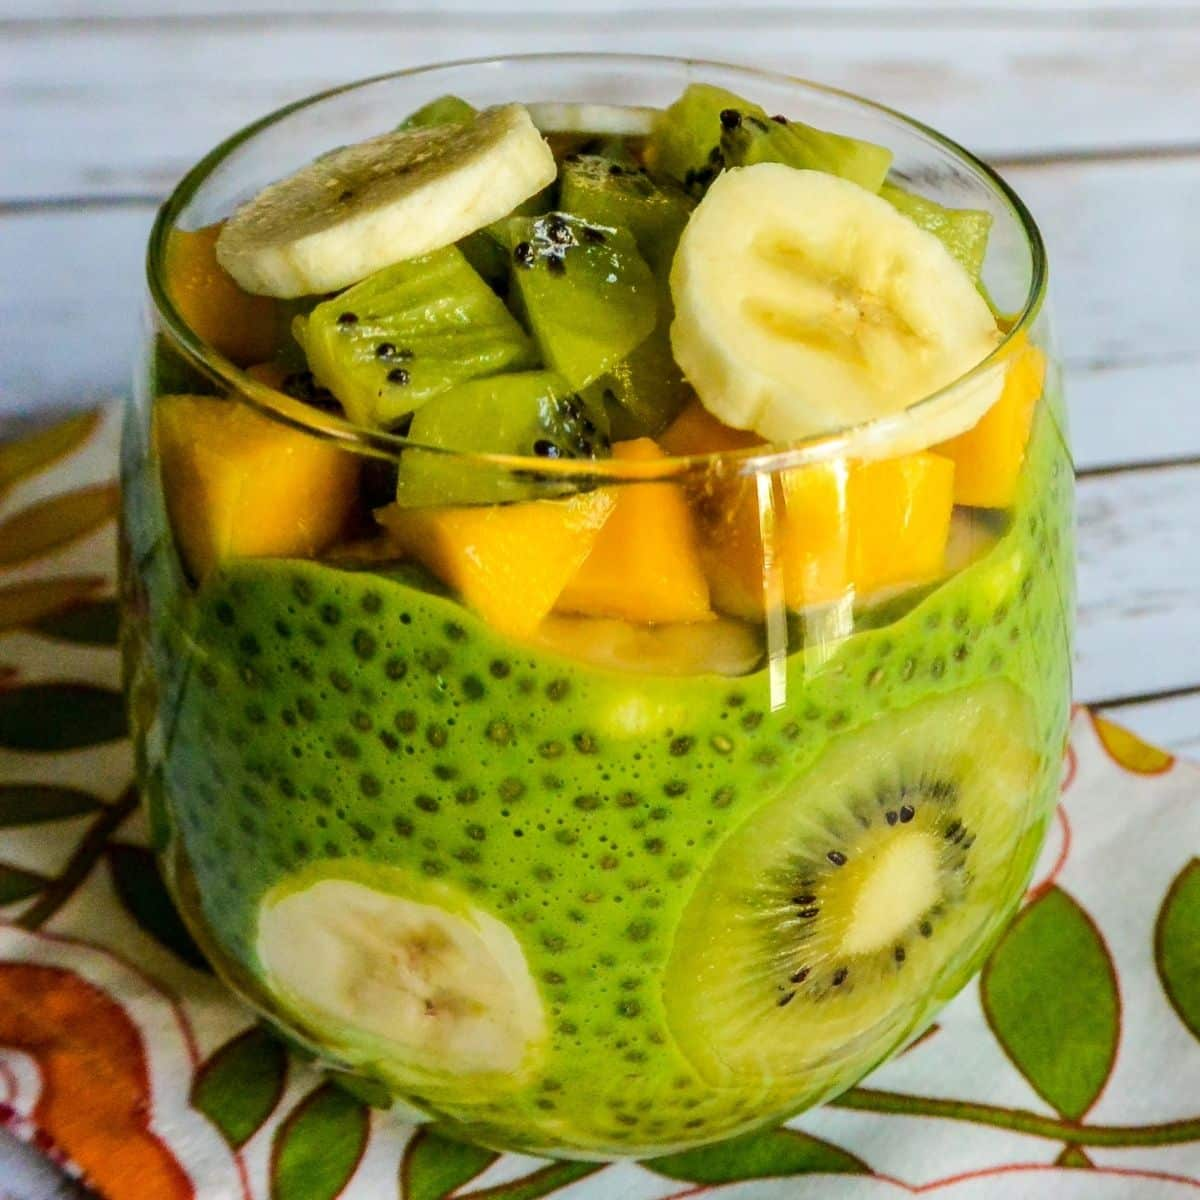 Green chia pudding with kiwi, mango, and banana in a glass